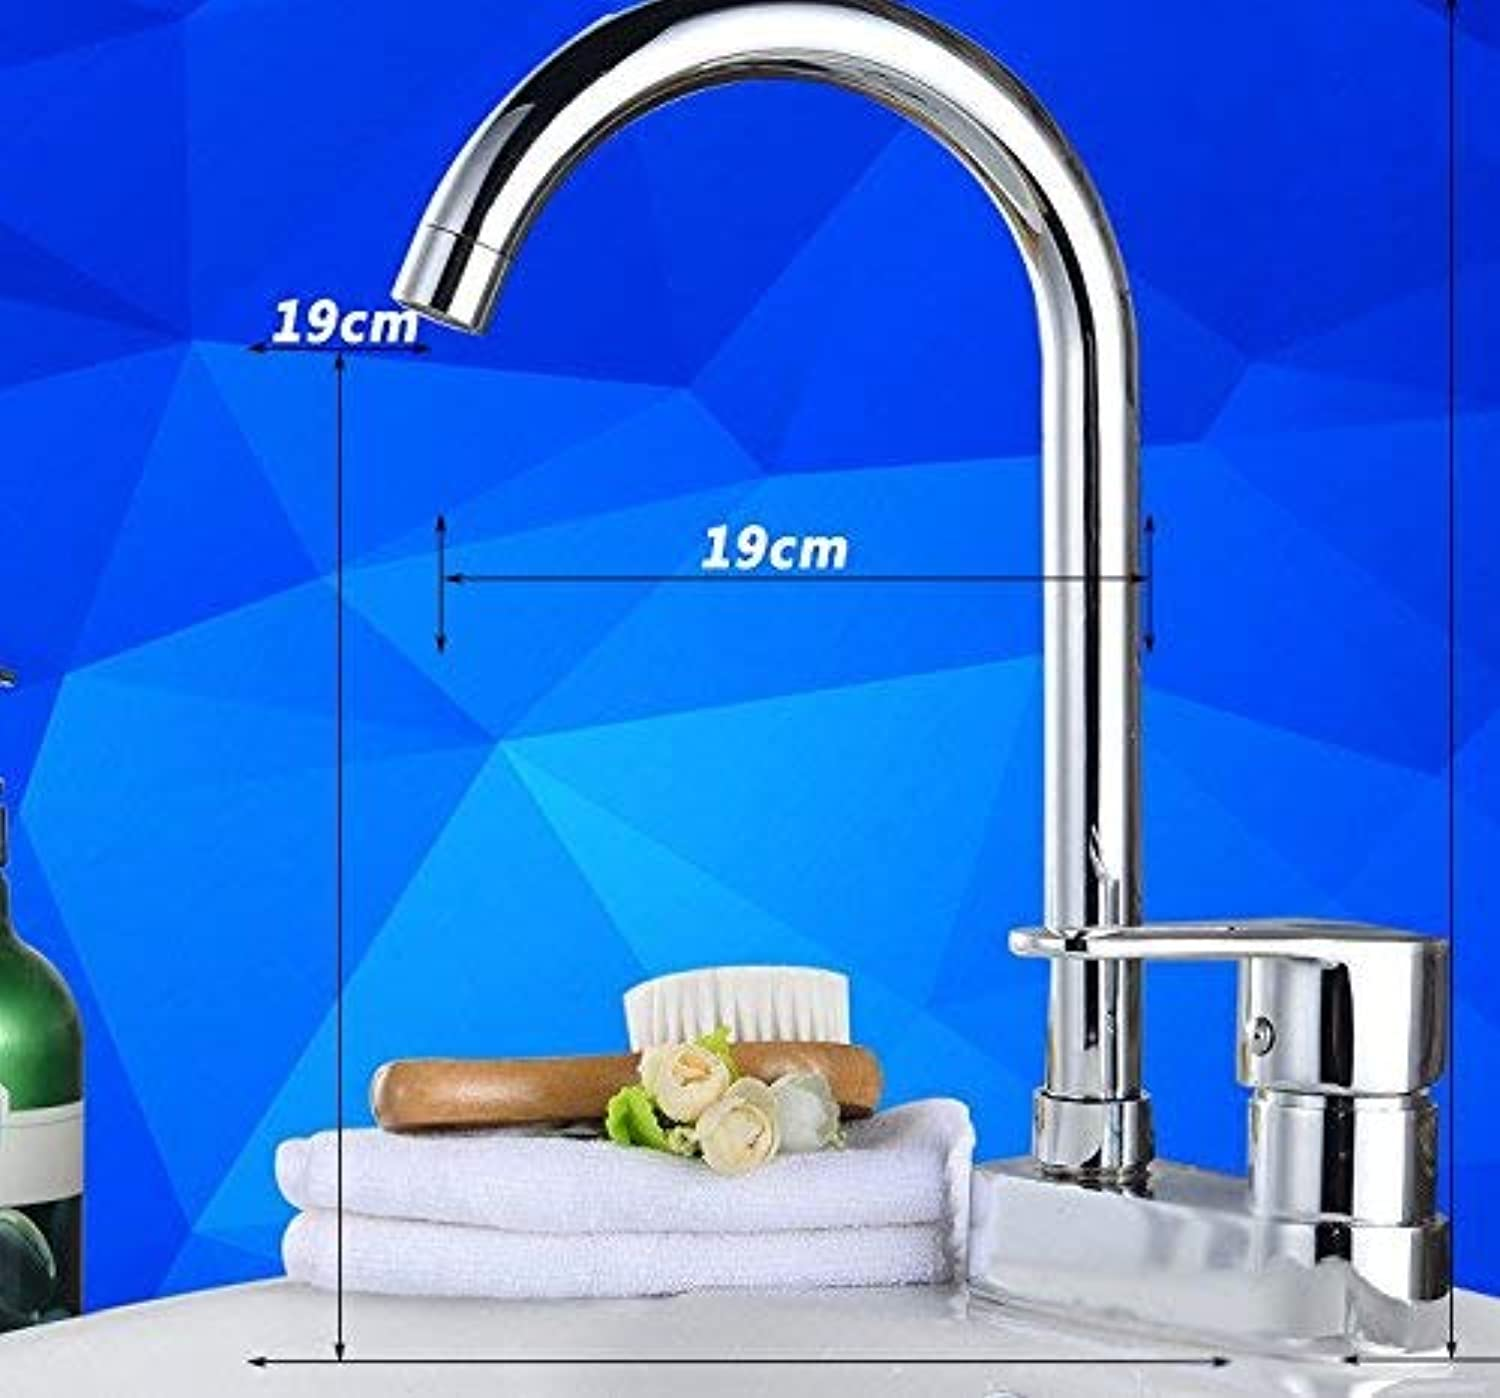 Oudan Mixer Water Tap Wash your face copper bathroom redating Hot and cold